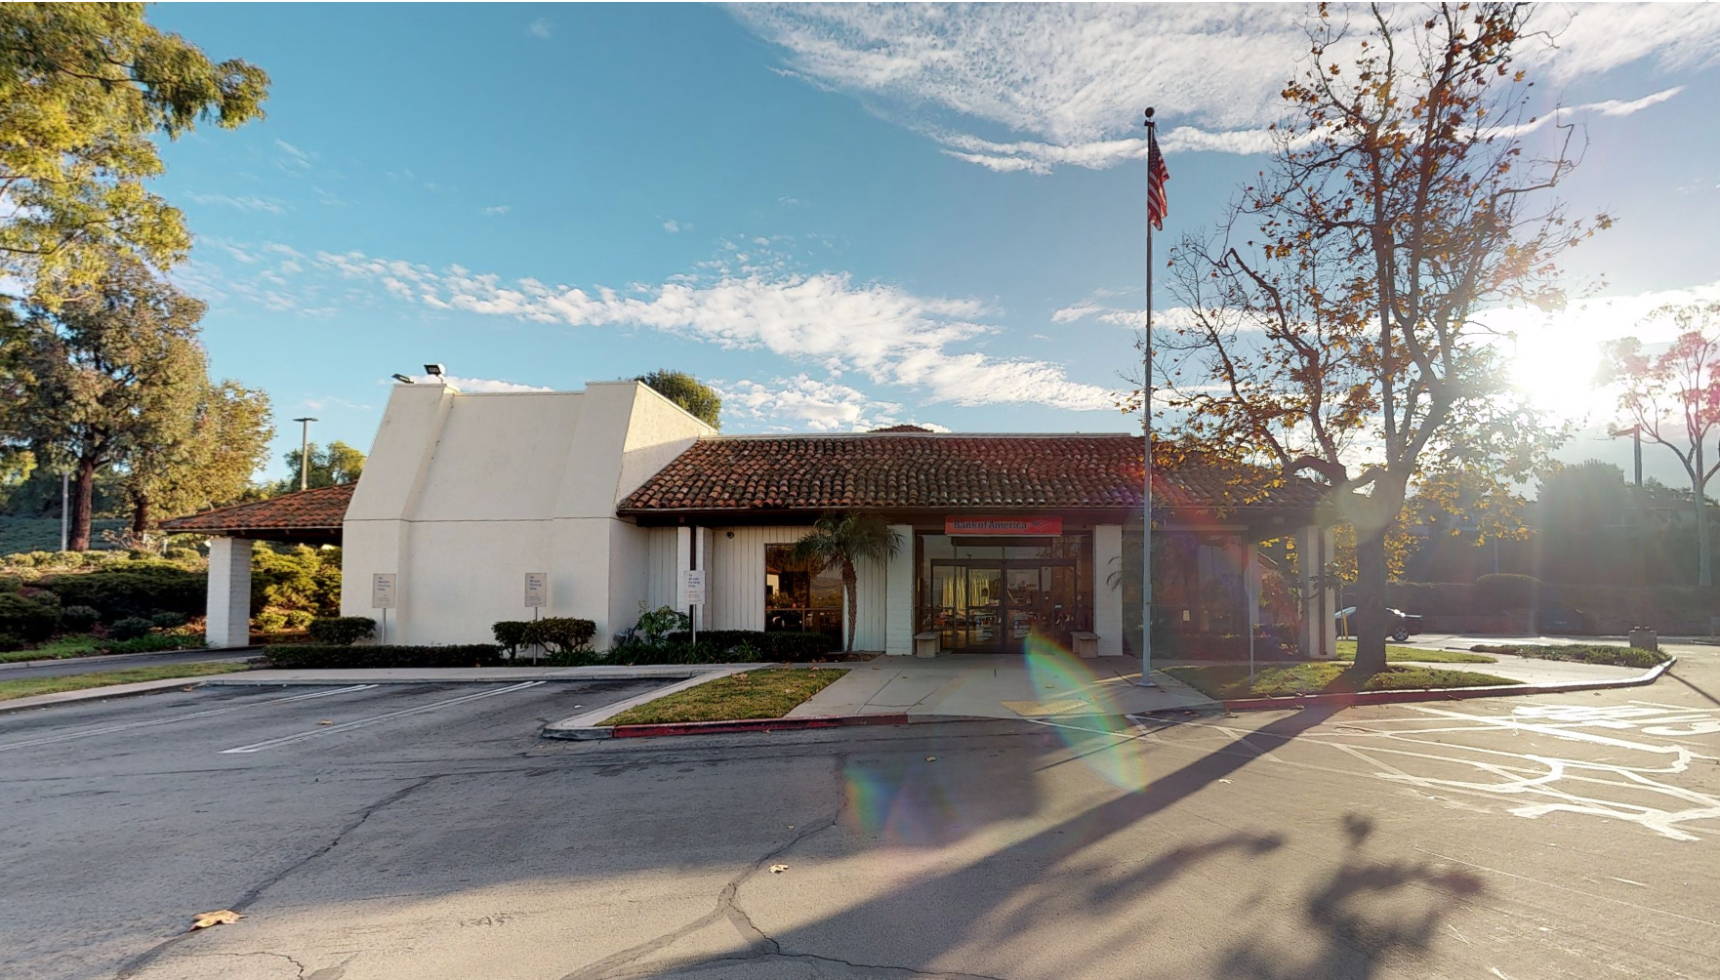 Bank of America financial center with drive-thru ATM   23711 Moulton Pkwy, Laguna Hills, CA 92653